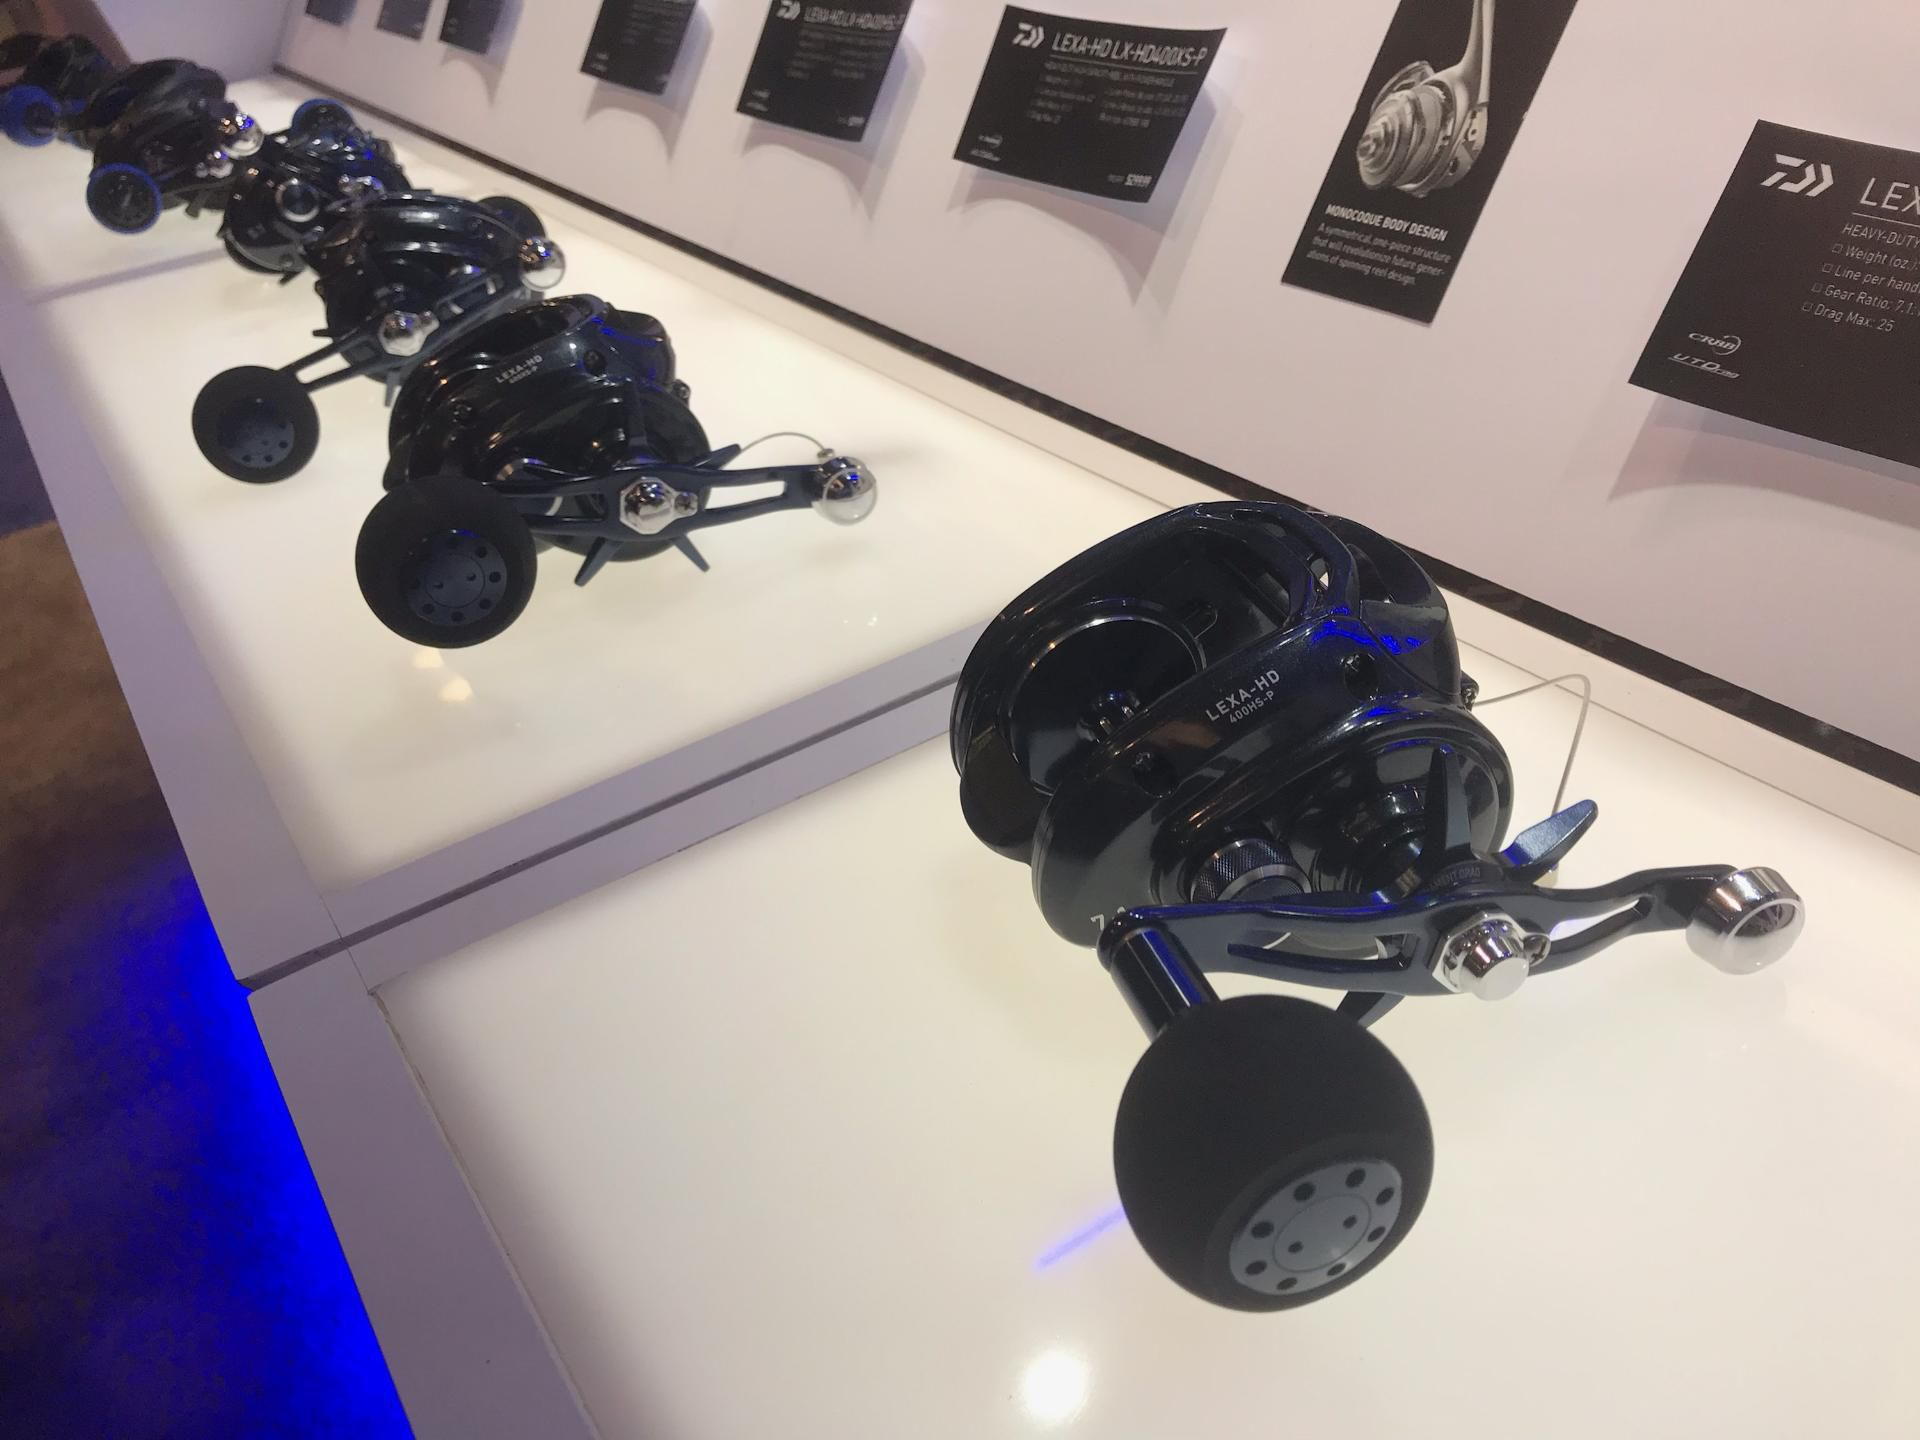 Daiwa's new Lexa HD heavy-duty, high-capacity reels are tough, versatile options to cover a number of applications from jigging to live-baiting. Available in several sizes and 4 retrieve ratios: 5.1:1, 6.3:1, 7.1:1 and 8.1:1.